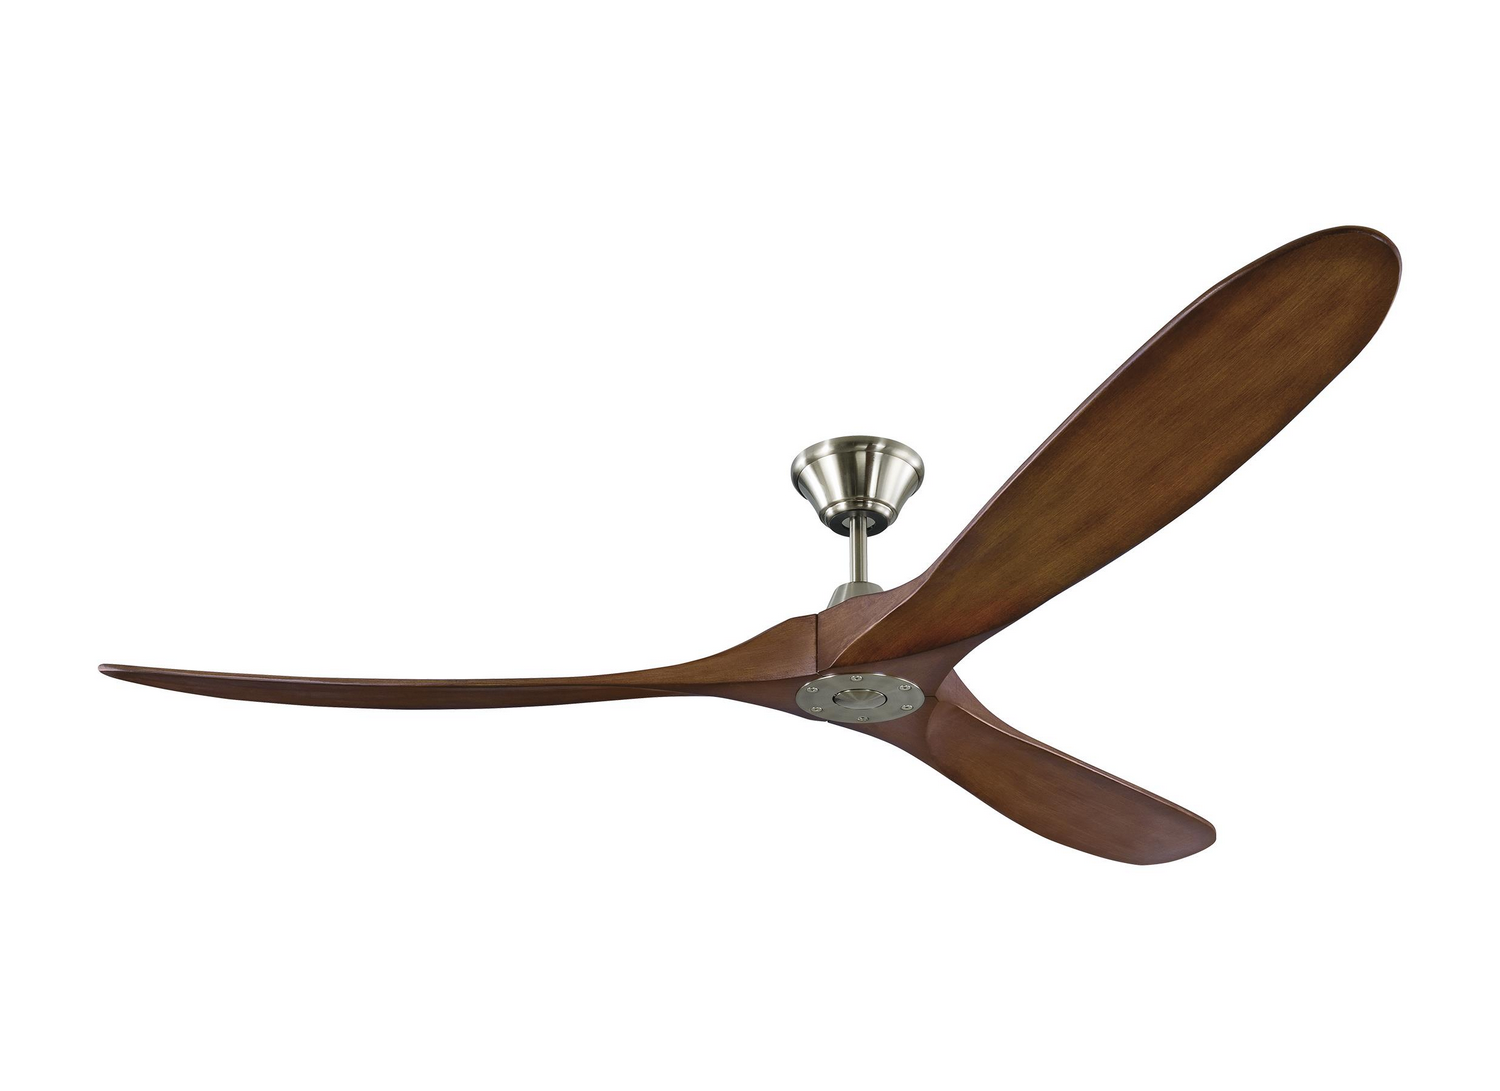 70 inch Ceiling Fan from the Maverick Max collection by Monte Carlo 3MAVR70BSKOA